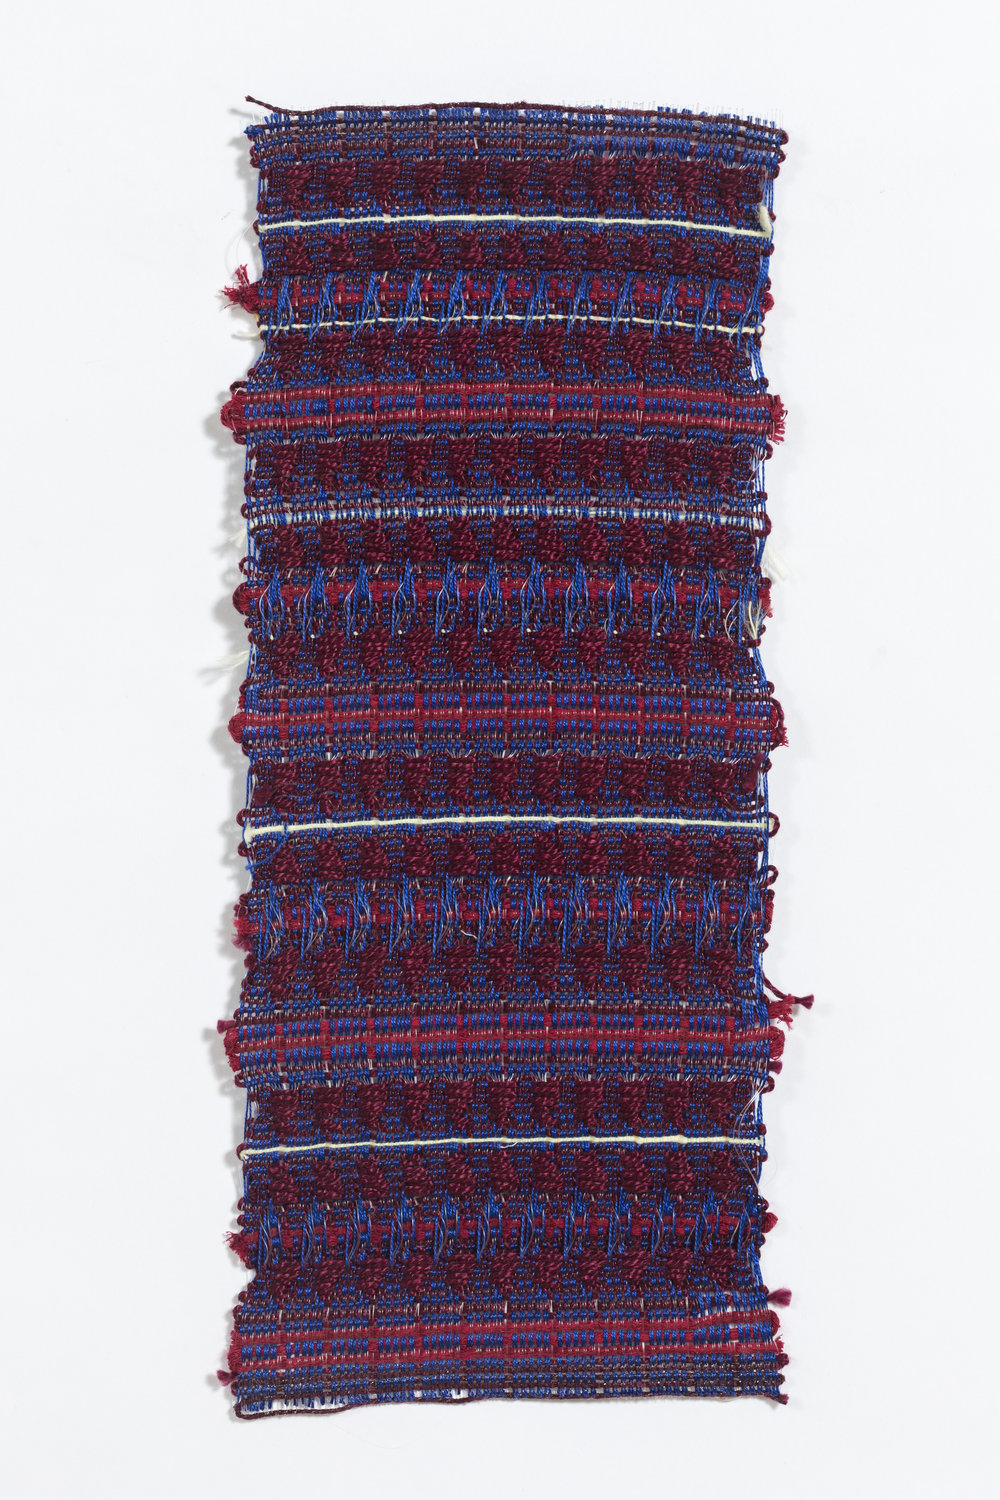 "woven on 24-harness dobby loom, approximately 6 x 8"", found yarns"